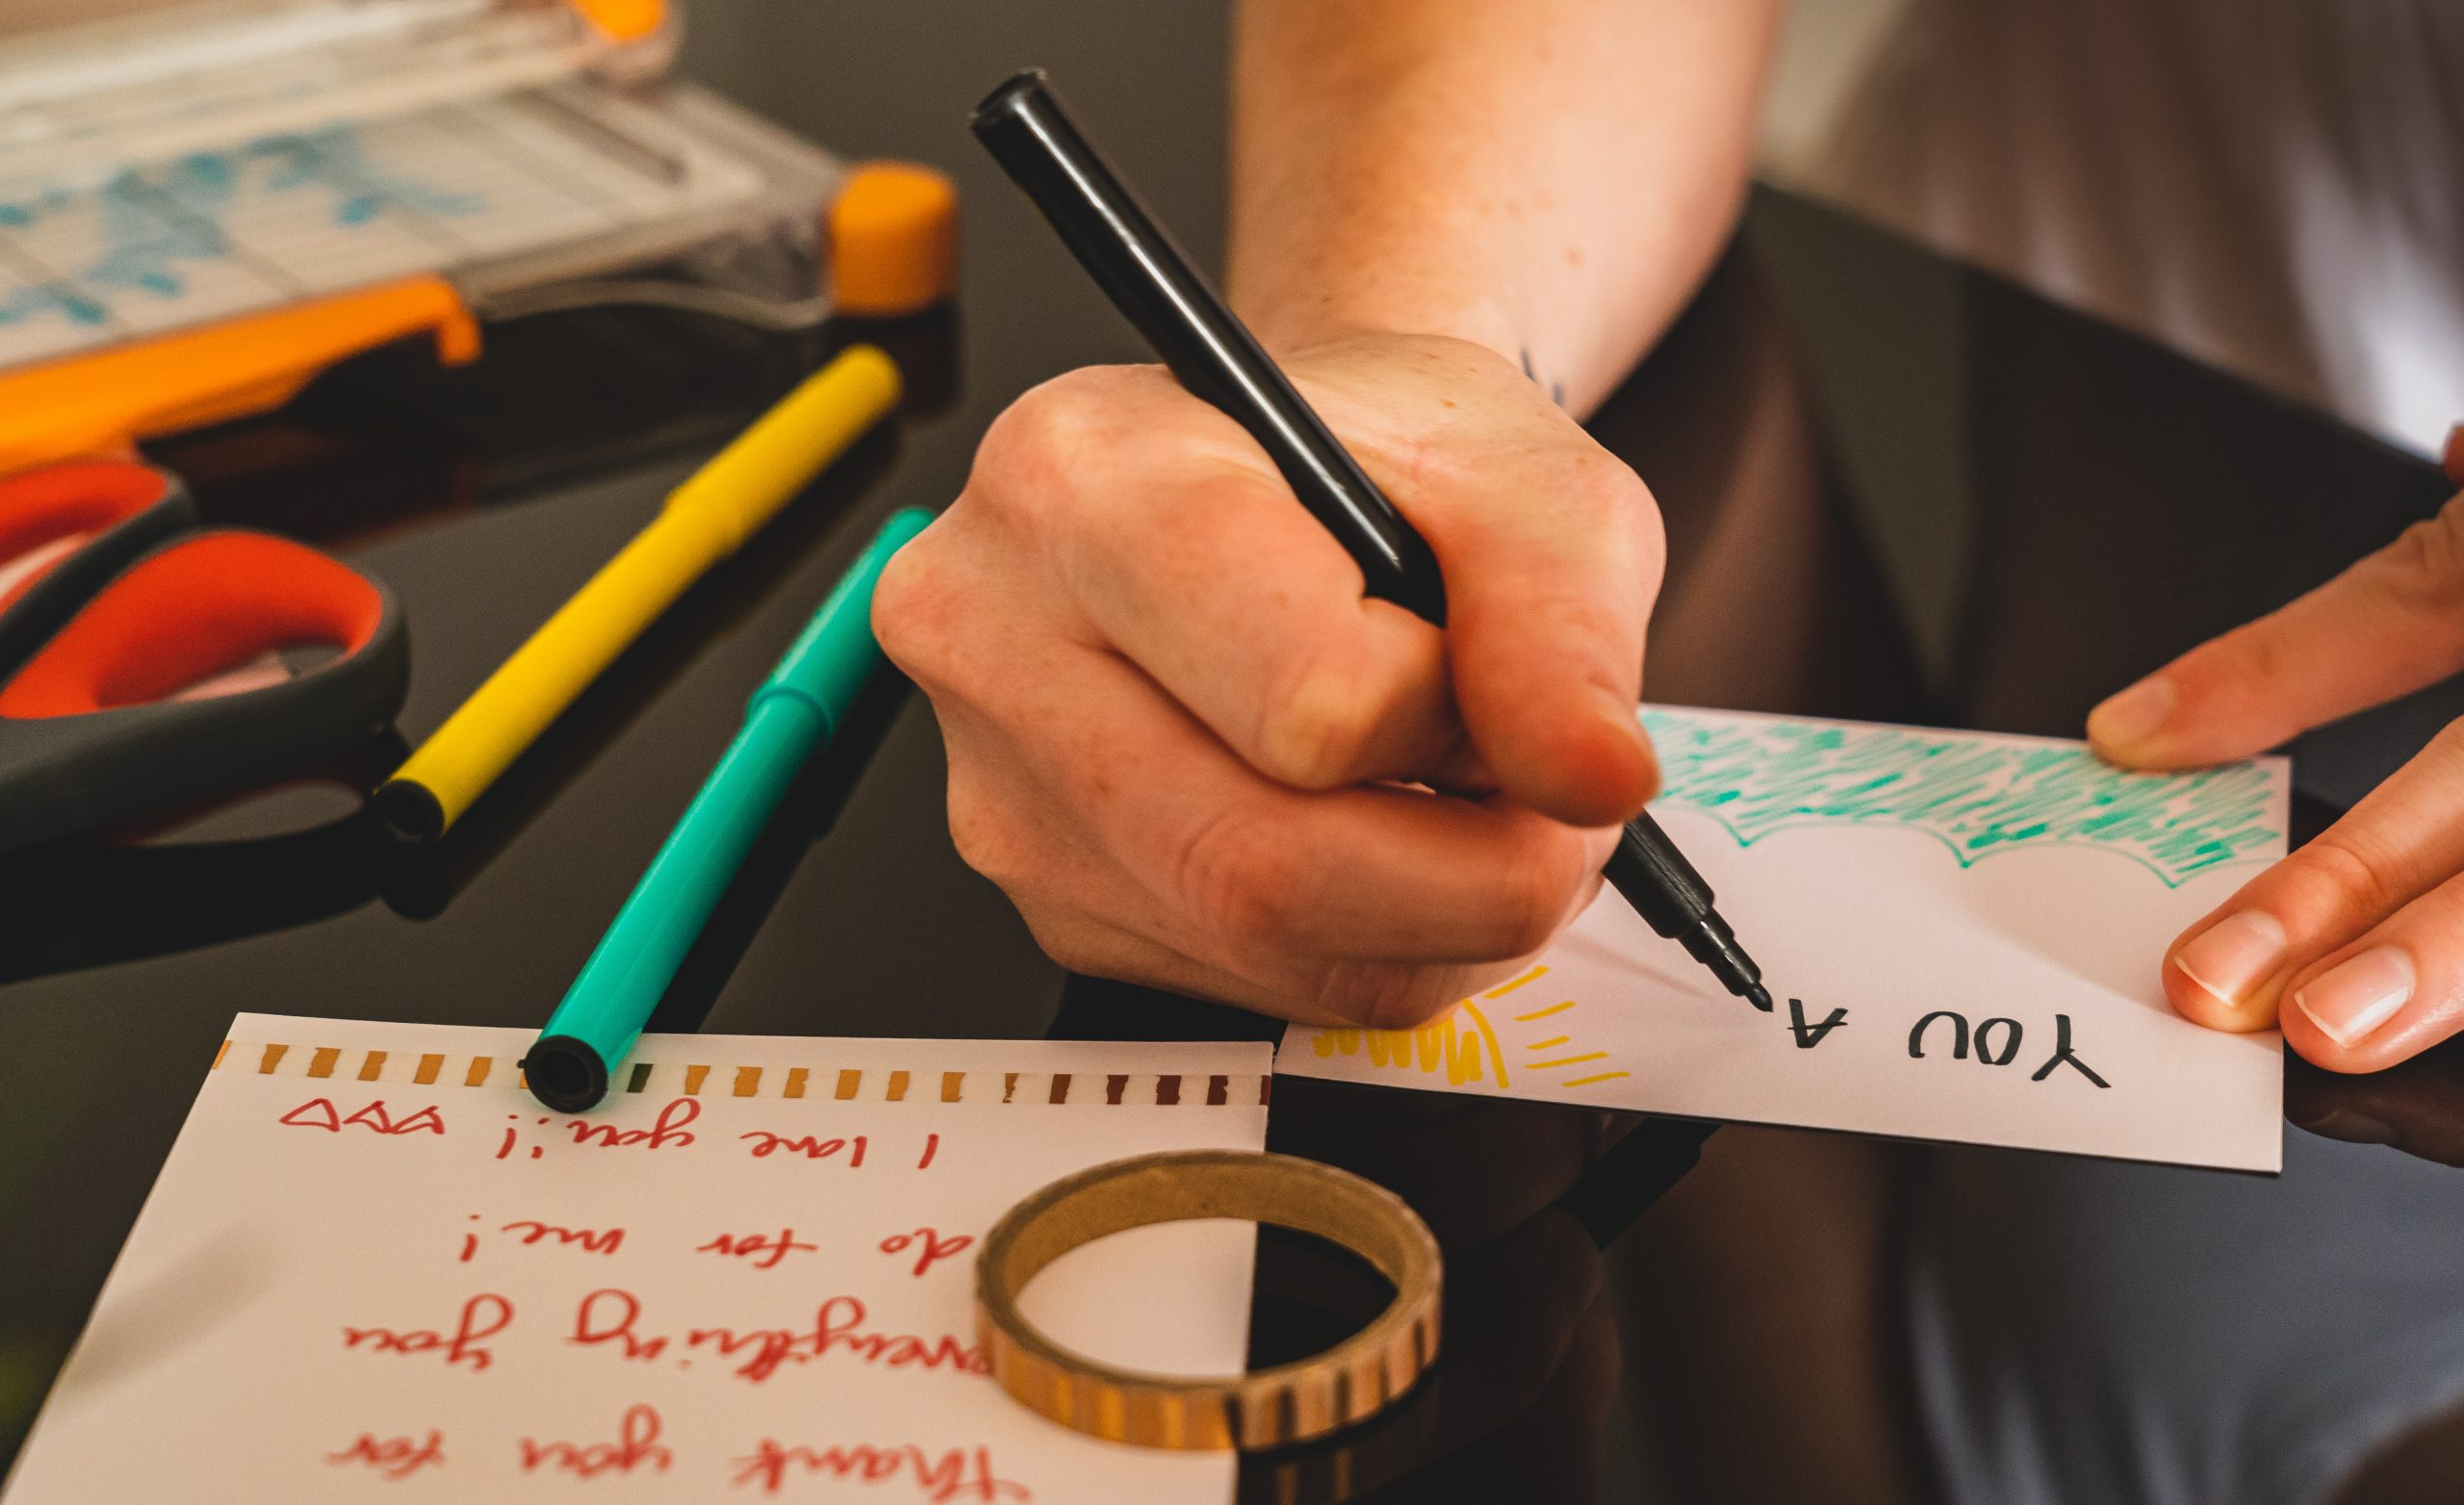 person writing and drawing on a card with colored markers